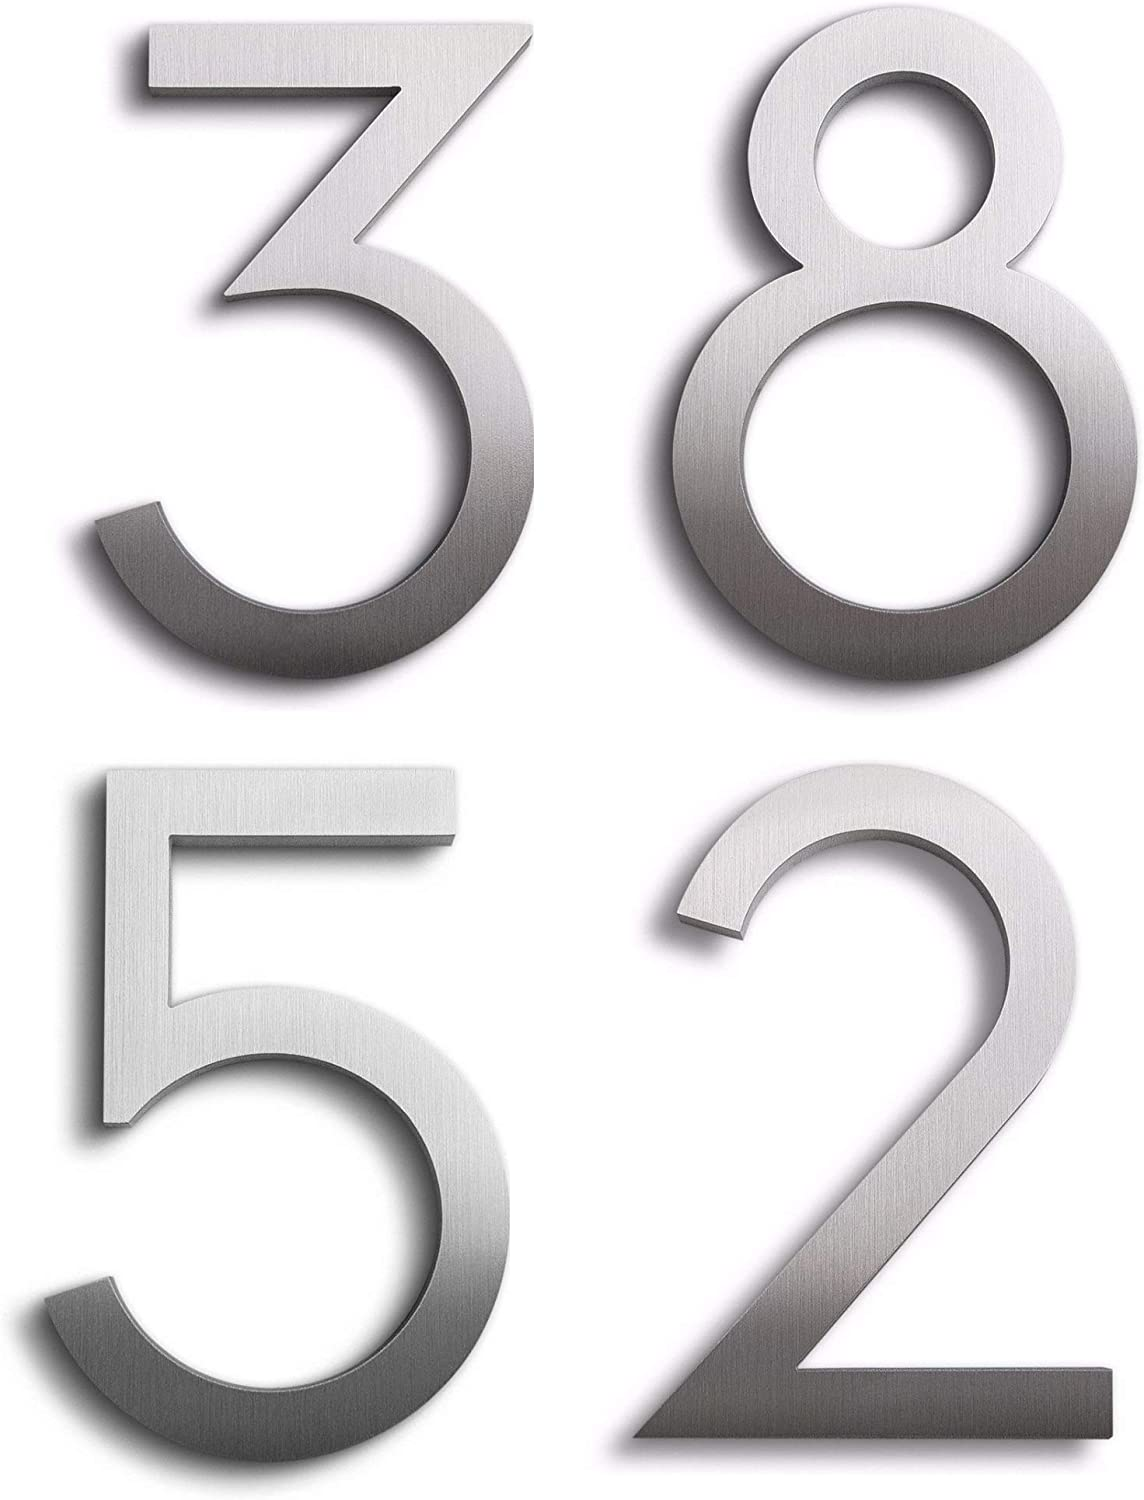 """0 1 2 3 4 5 6 7 8 9 A B 3/"""" Chrome House Number Front Door Buildings Numeral"""